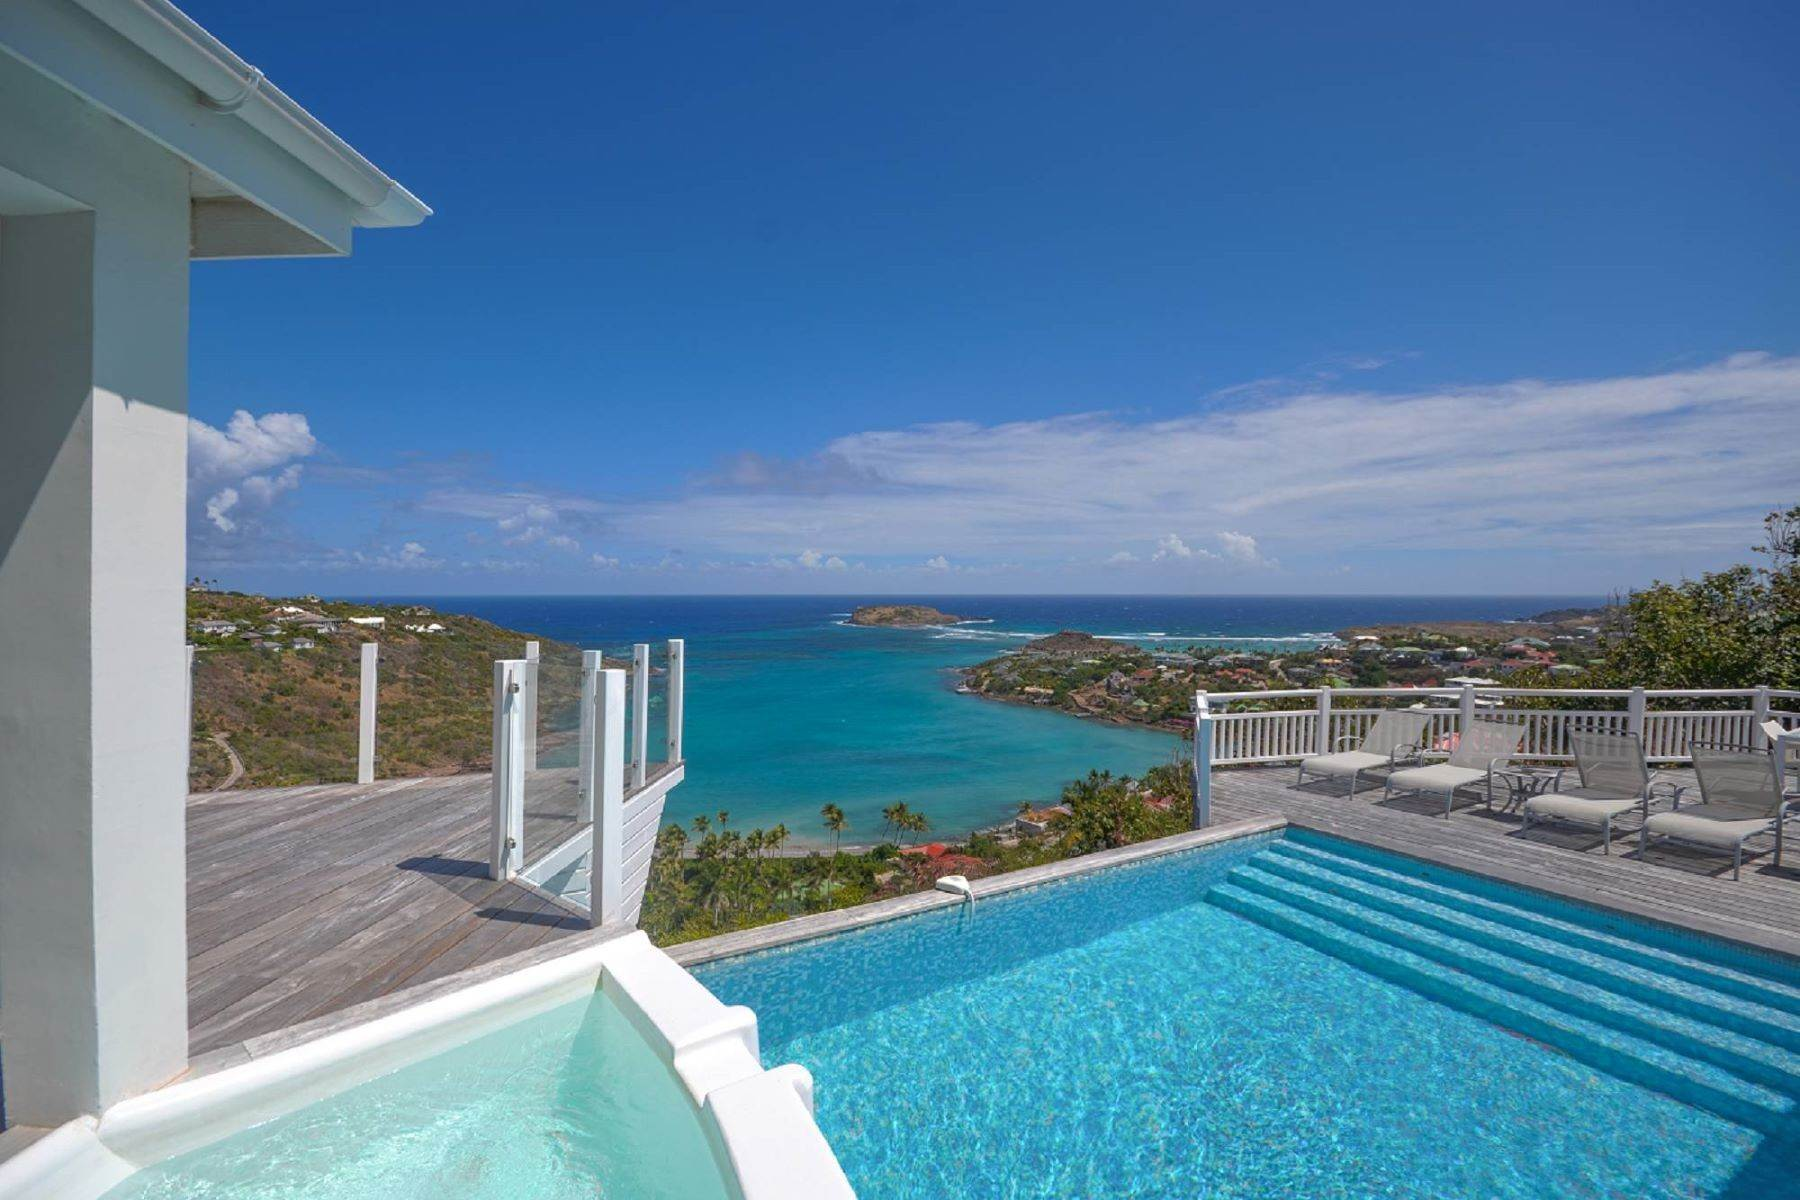 Property for Sale at Villa Milonga Marigot Other St. Barthelemy, Cities In St. Barthelemy 97133 St. Barthelemy